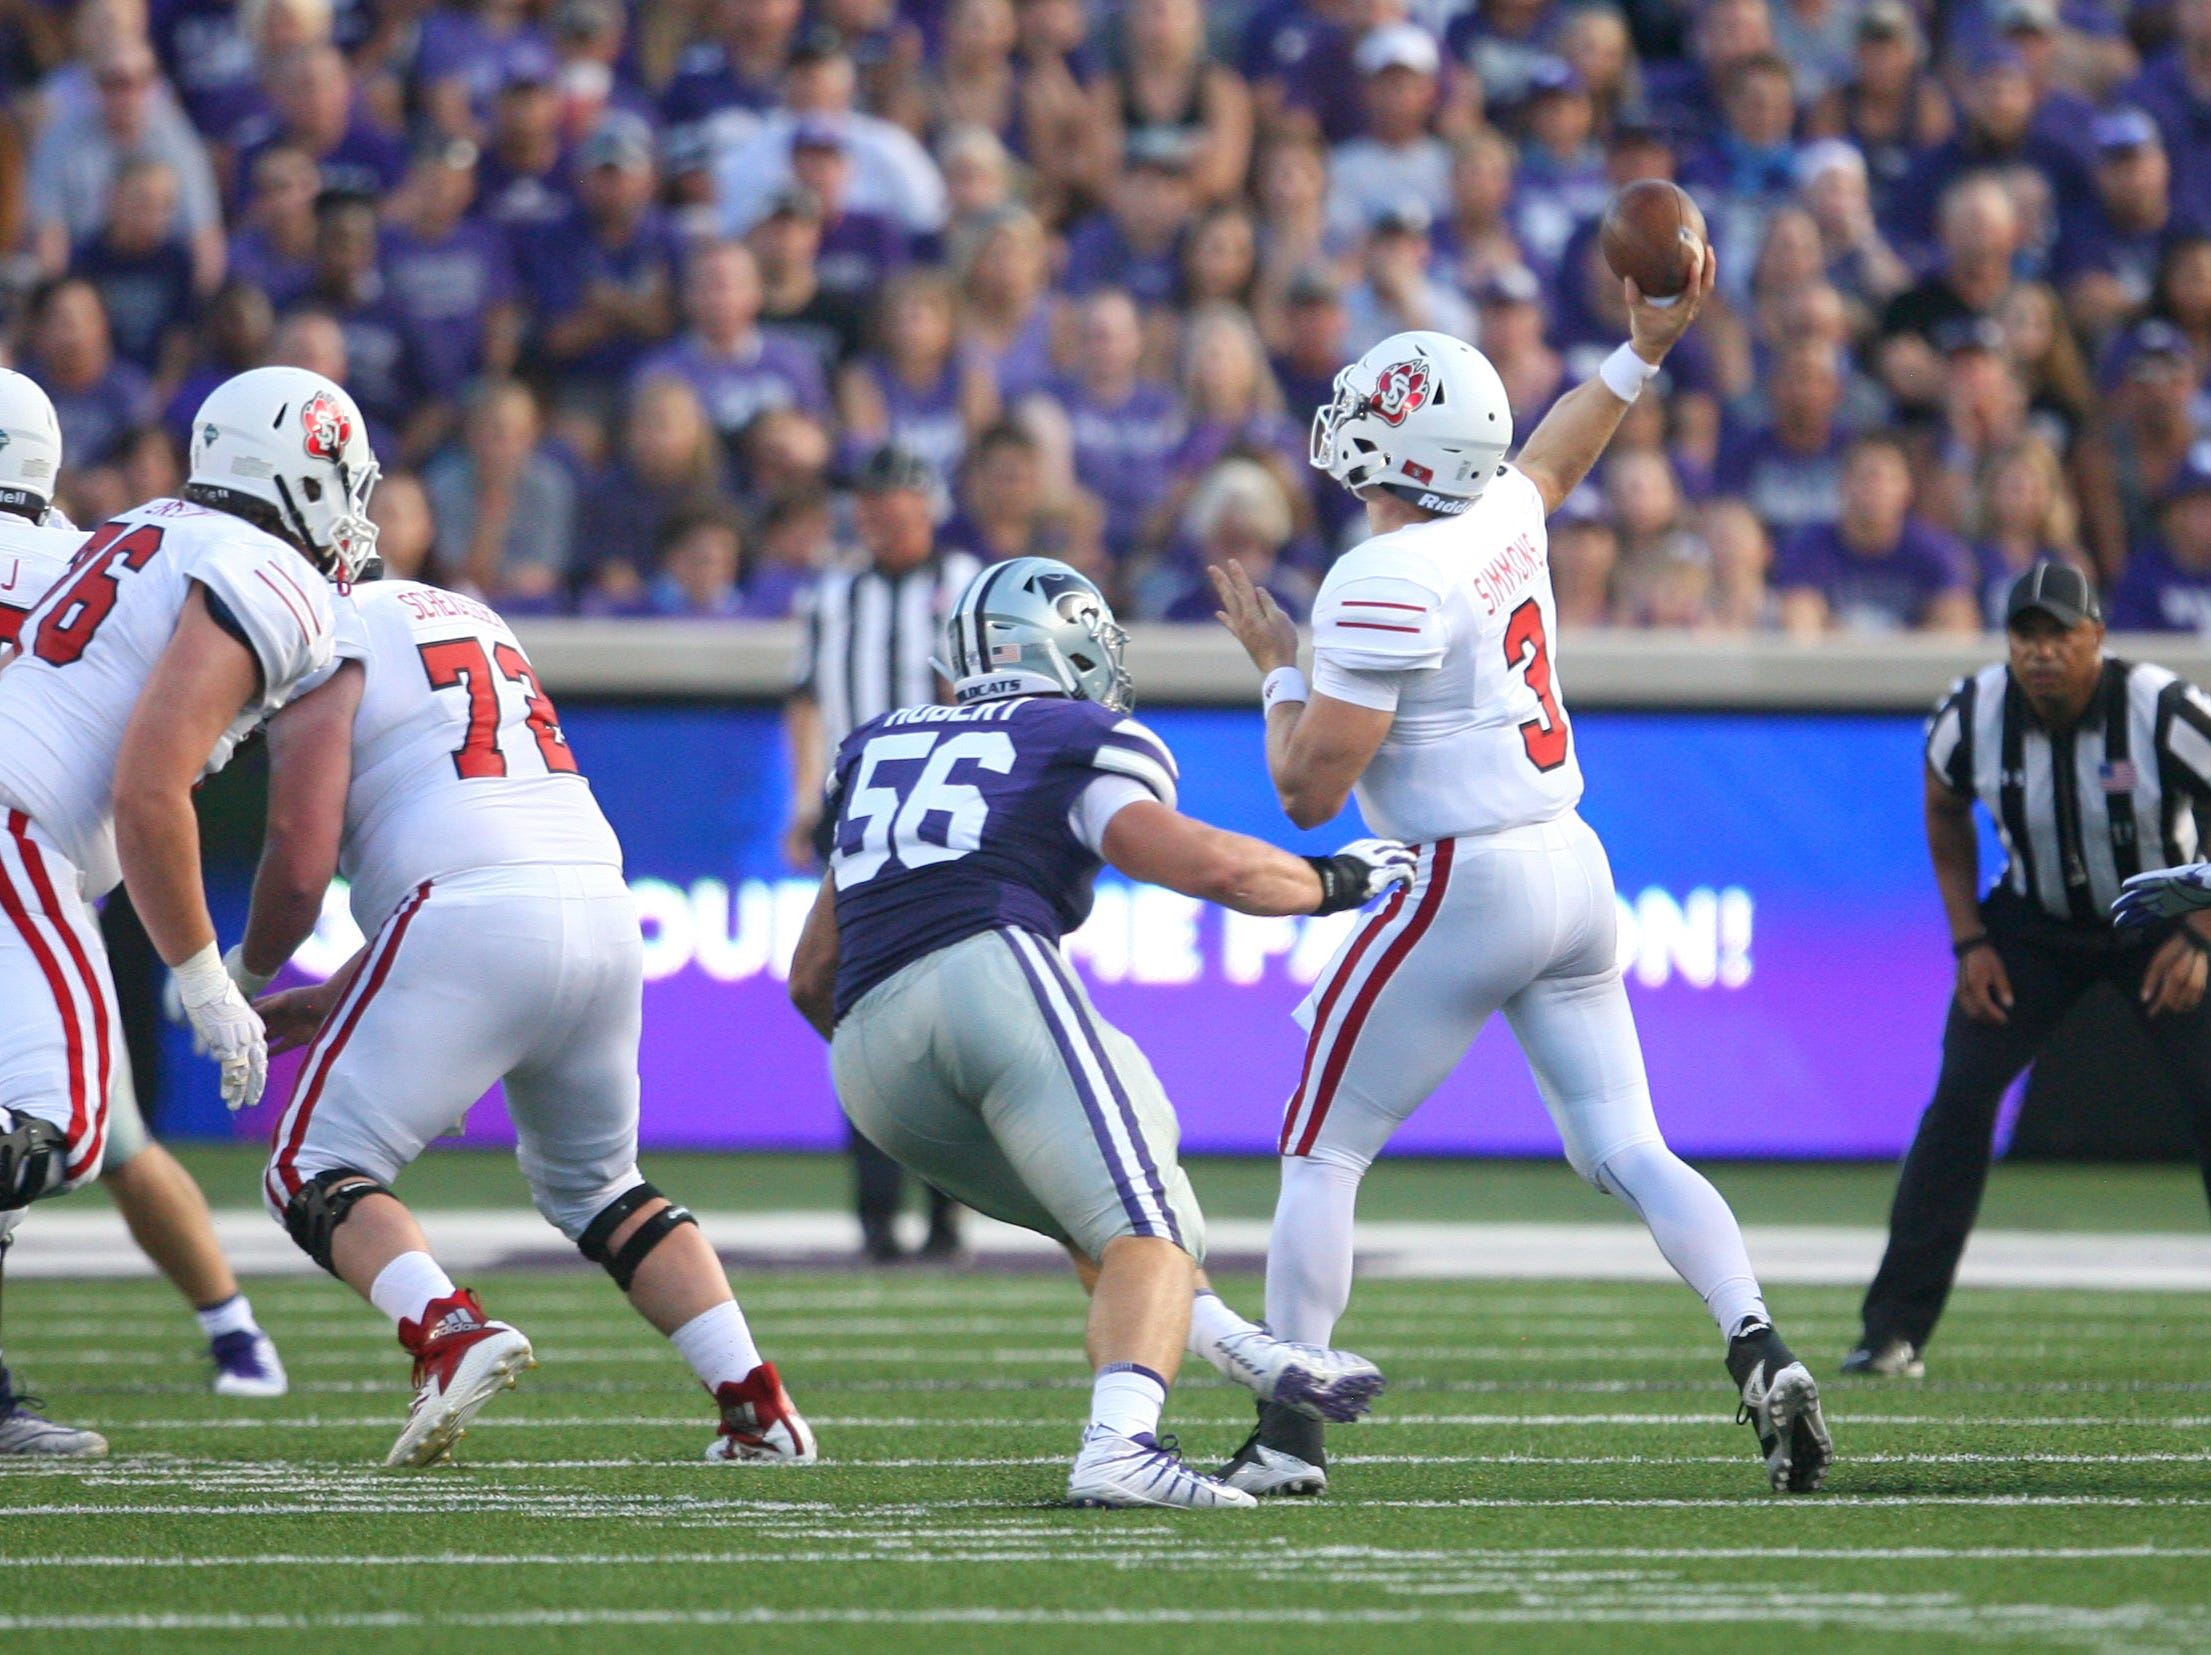 Sep 1, 2018; Manhattan, KS, USA; South Dakota Coyotes quarterback Austin Simmons (3) is pressured by Kansas State Wildcats defensive end Wyatt Hubert (56) at Bill Snyder Family Stadium. Mandatory Credit: Scott Sewell-USA TODAY Sports